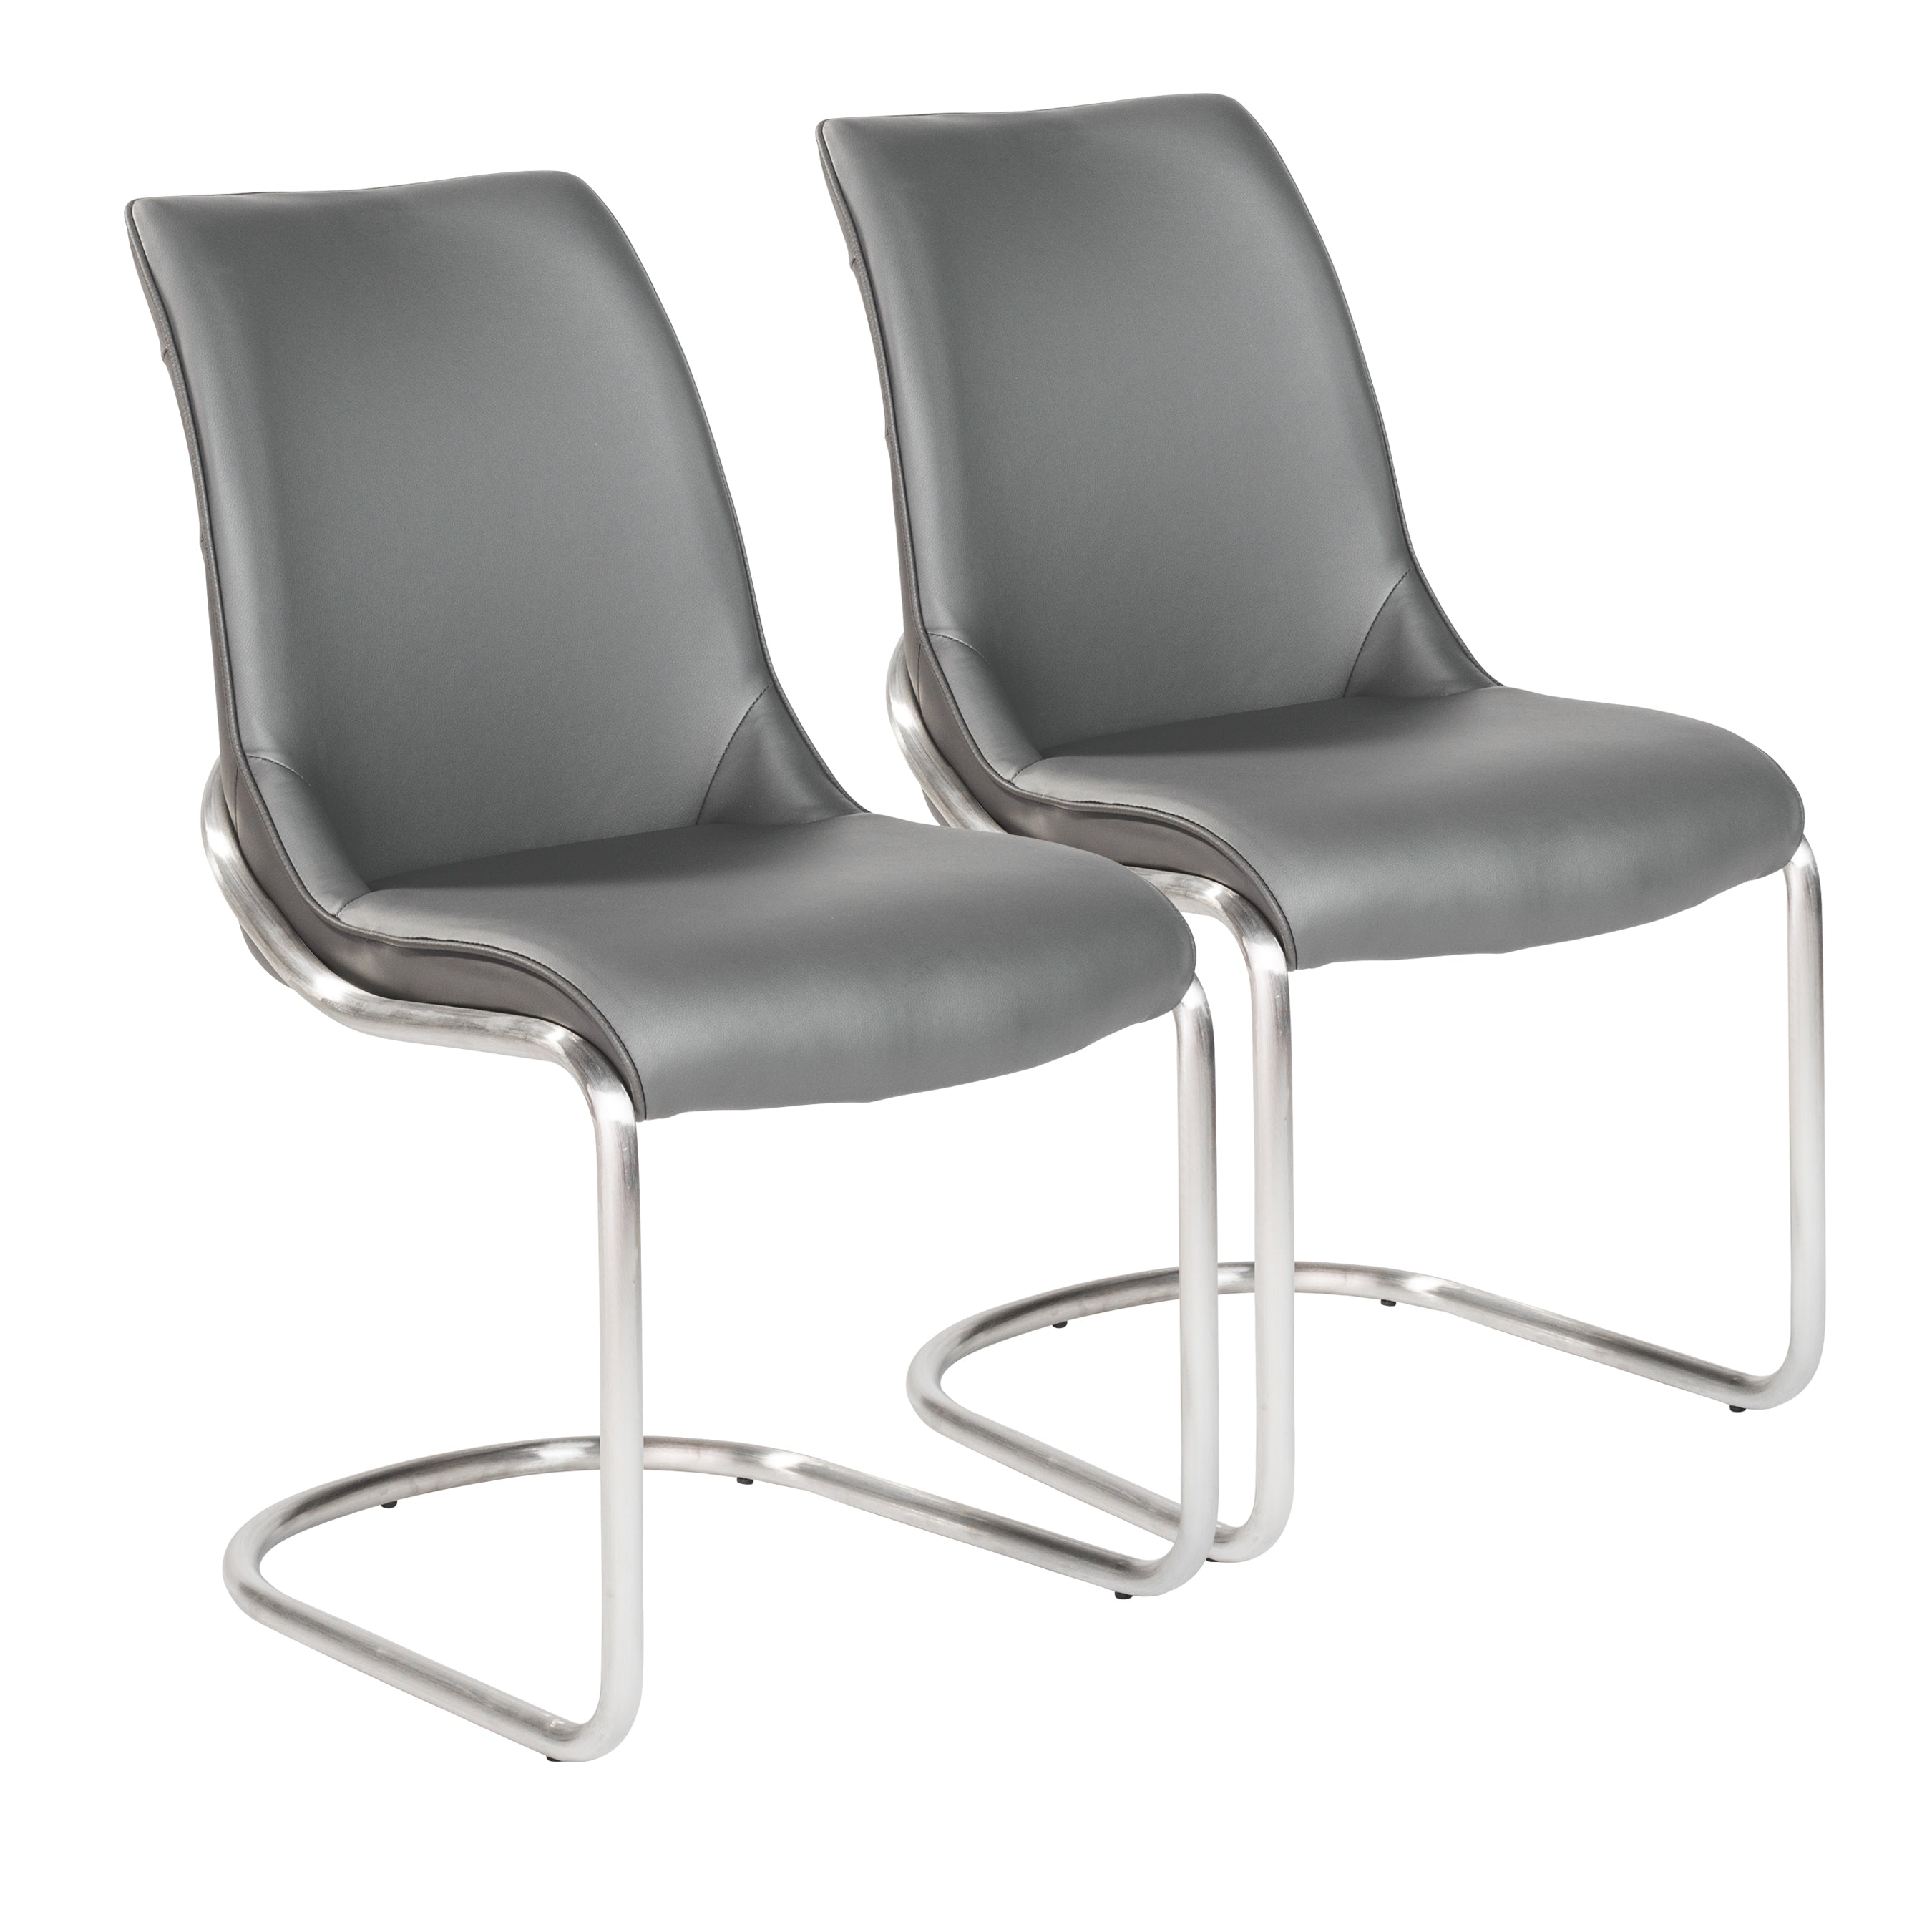 Versatile Dark Gray Leatherette Guest or Conference Chairs (Set of 2)